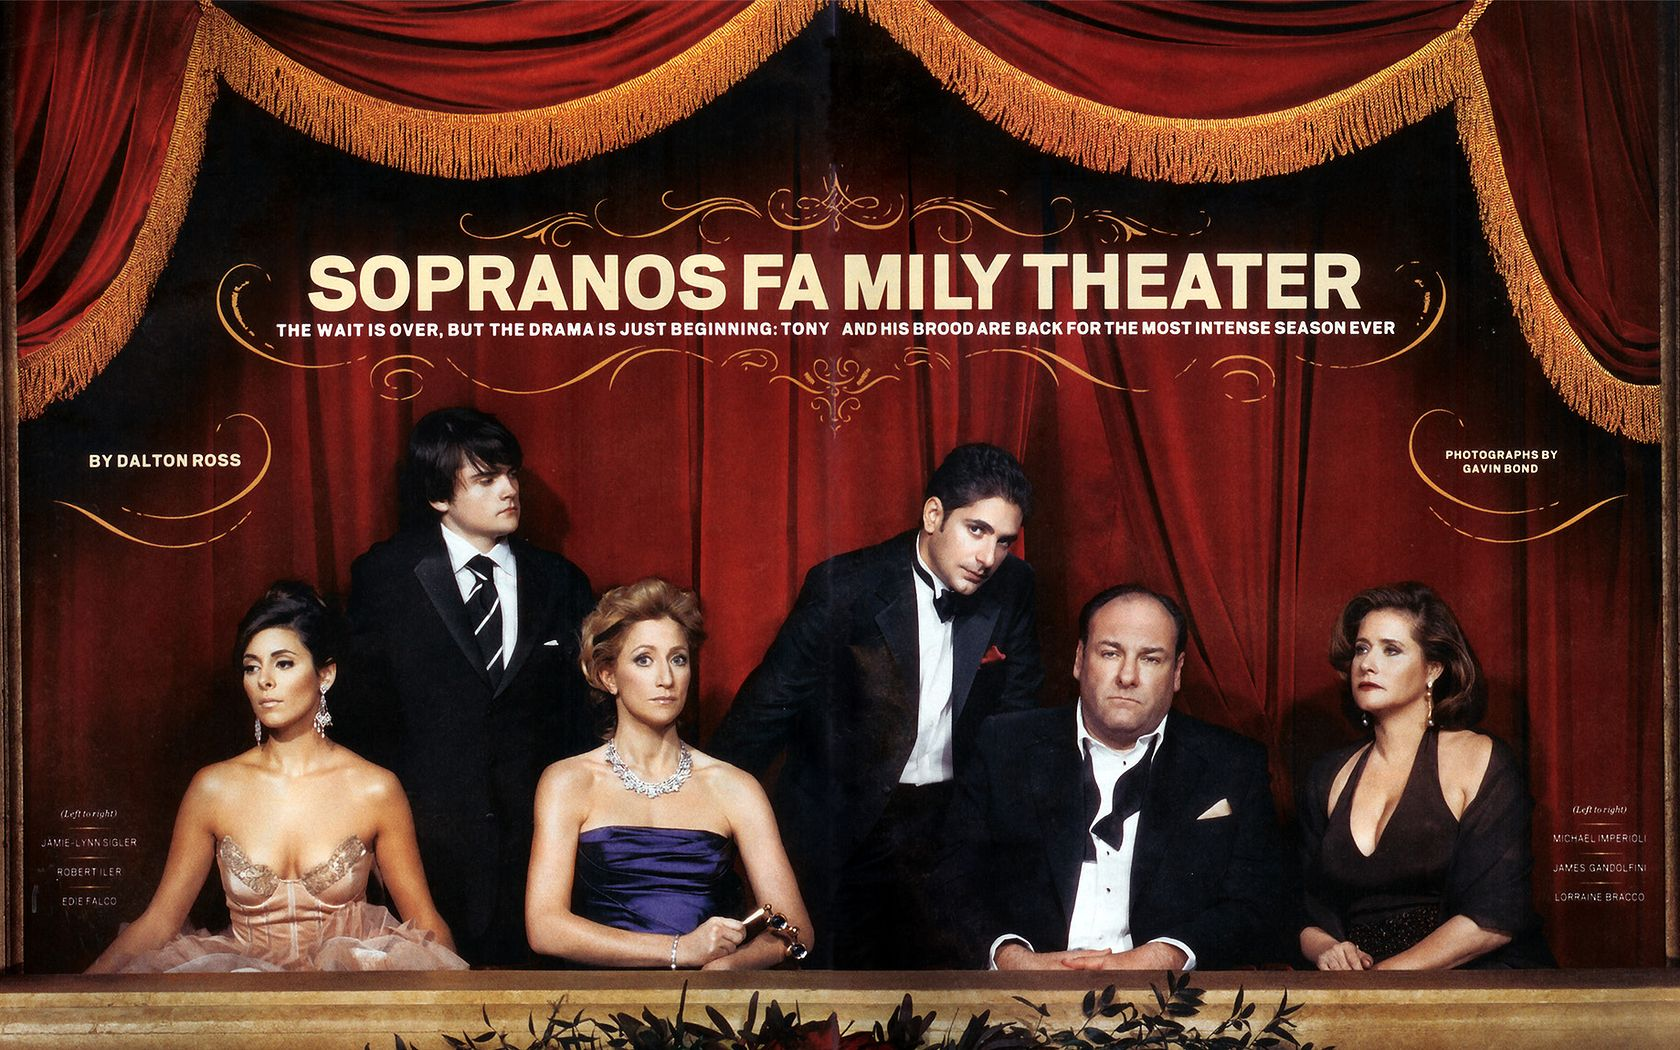 The Sopranos Iphone Wallpaper The Sopranos Wallpaper And Background Image 1680x1050